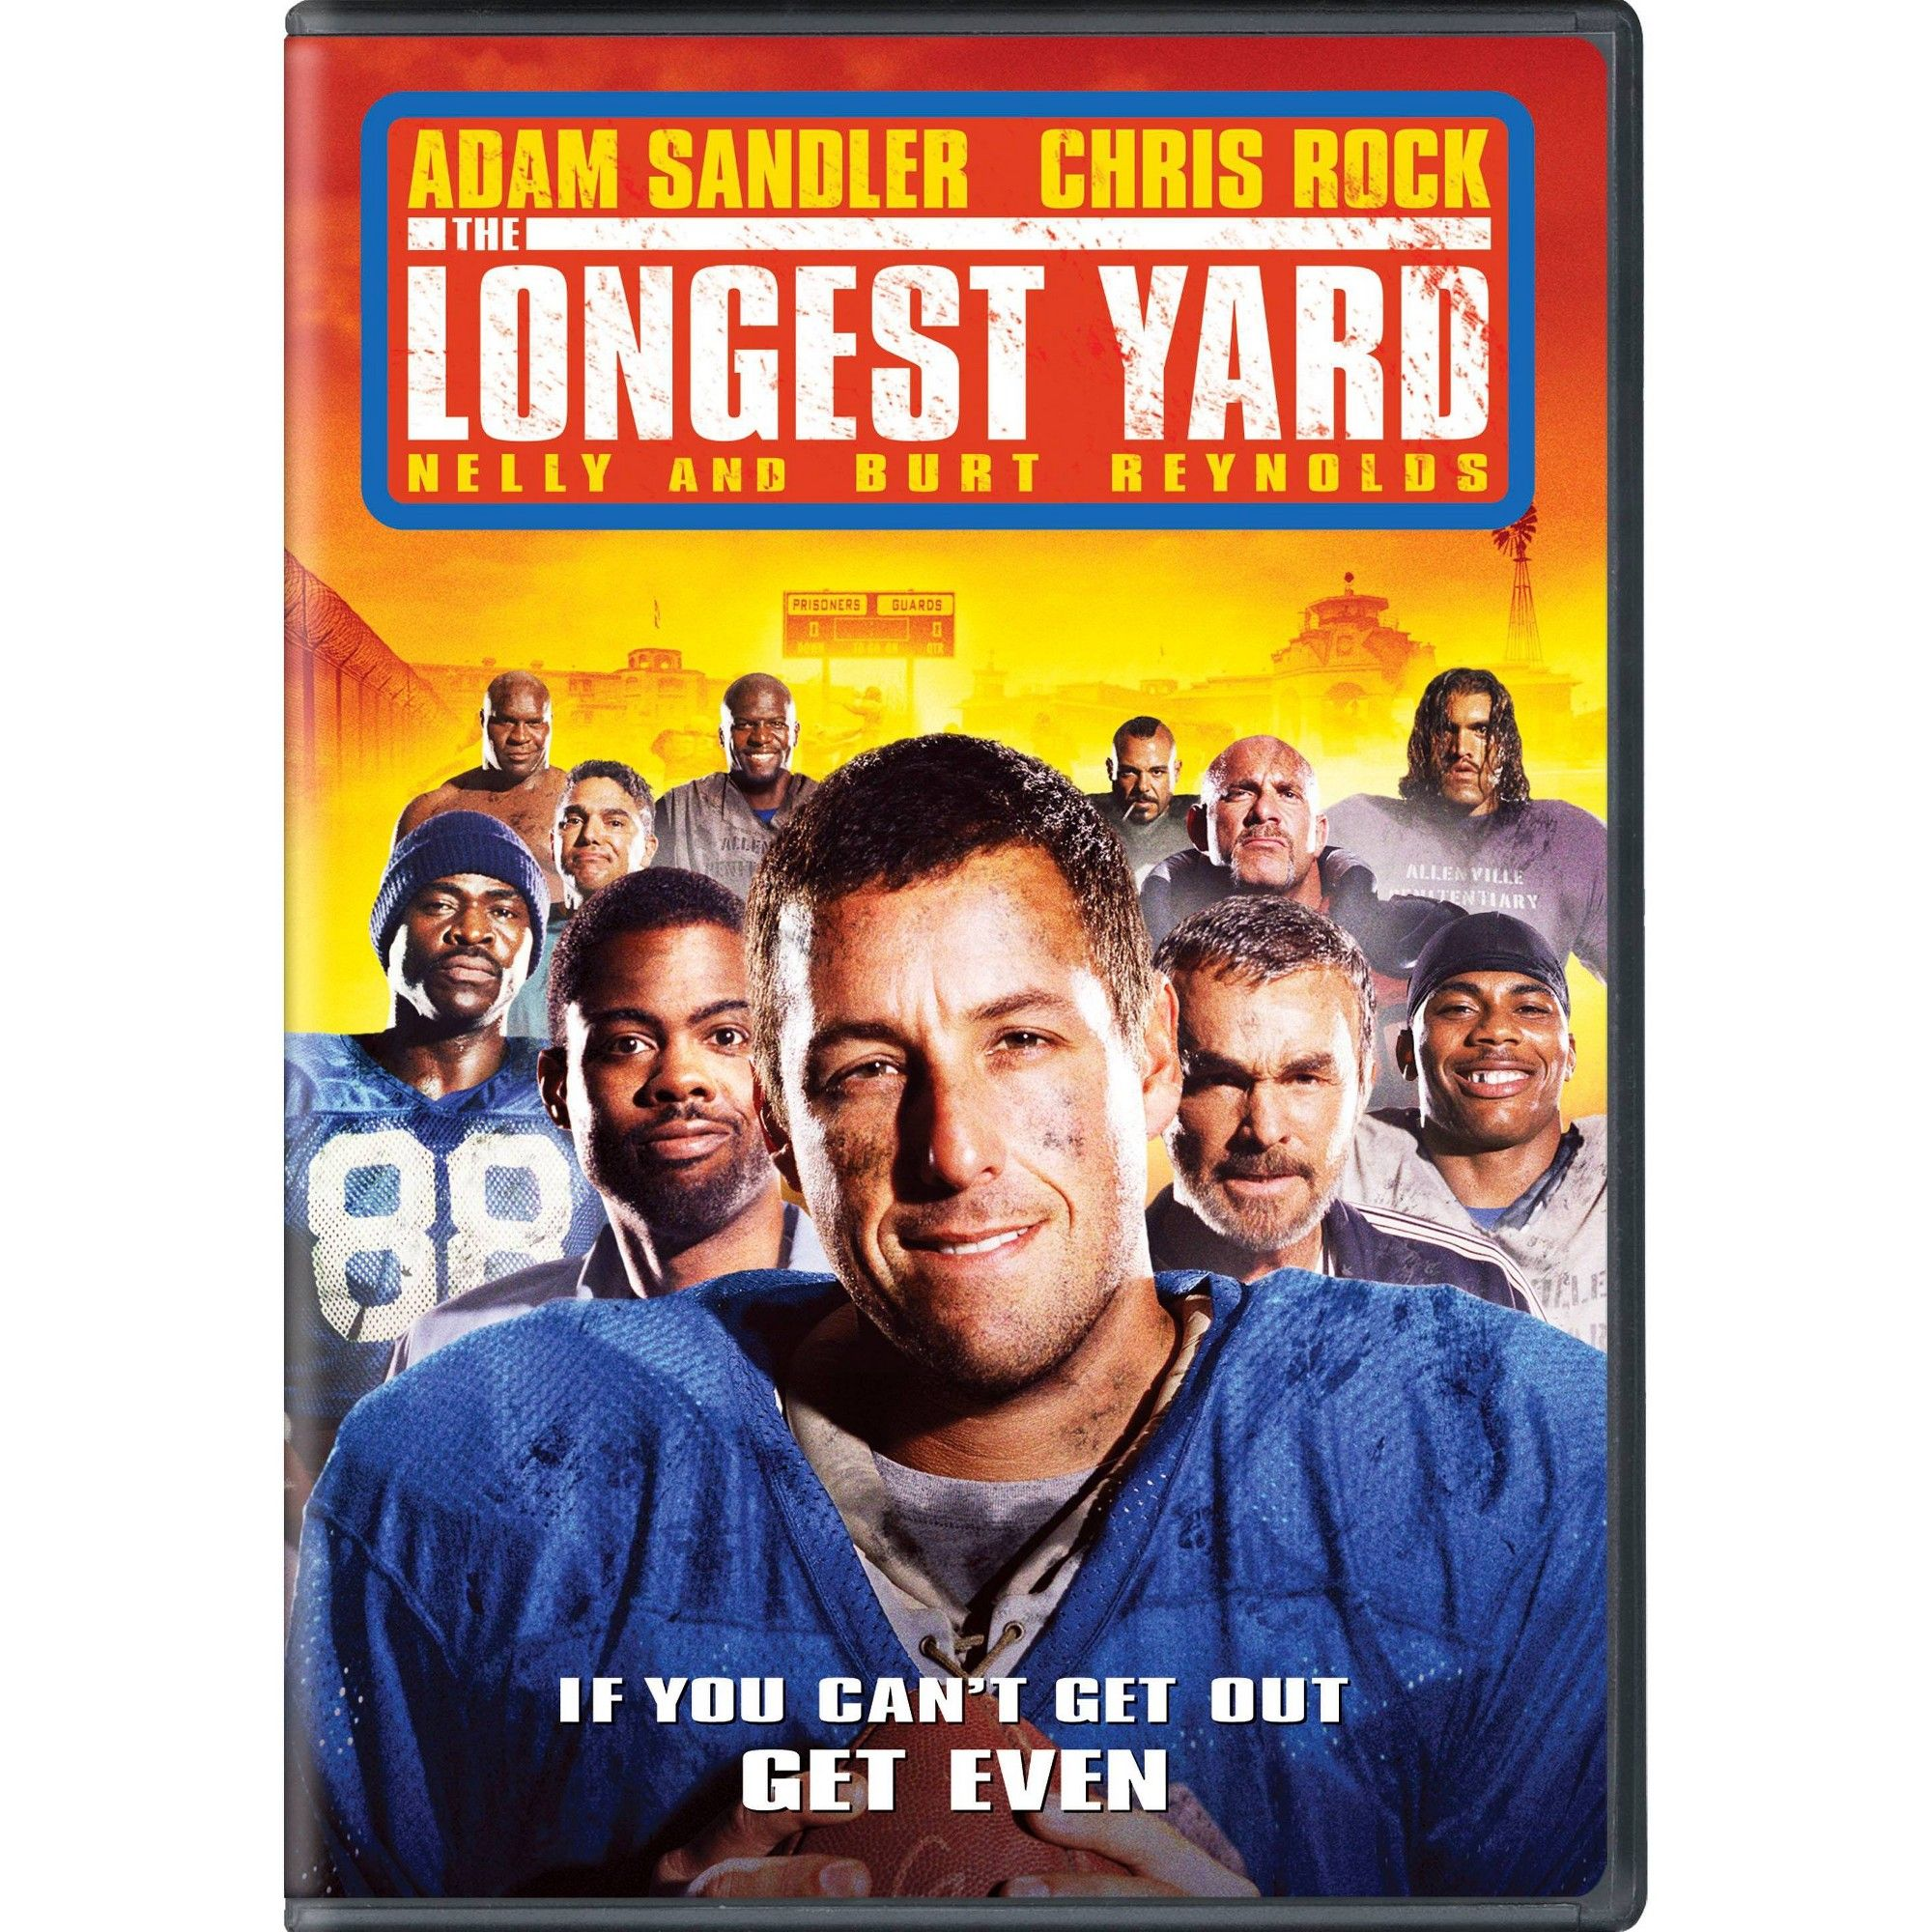 Longest Yard Dvd Comedy Movies Funny Movies Adam Sandler Movies